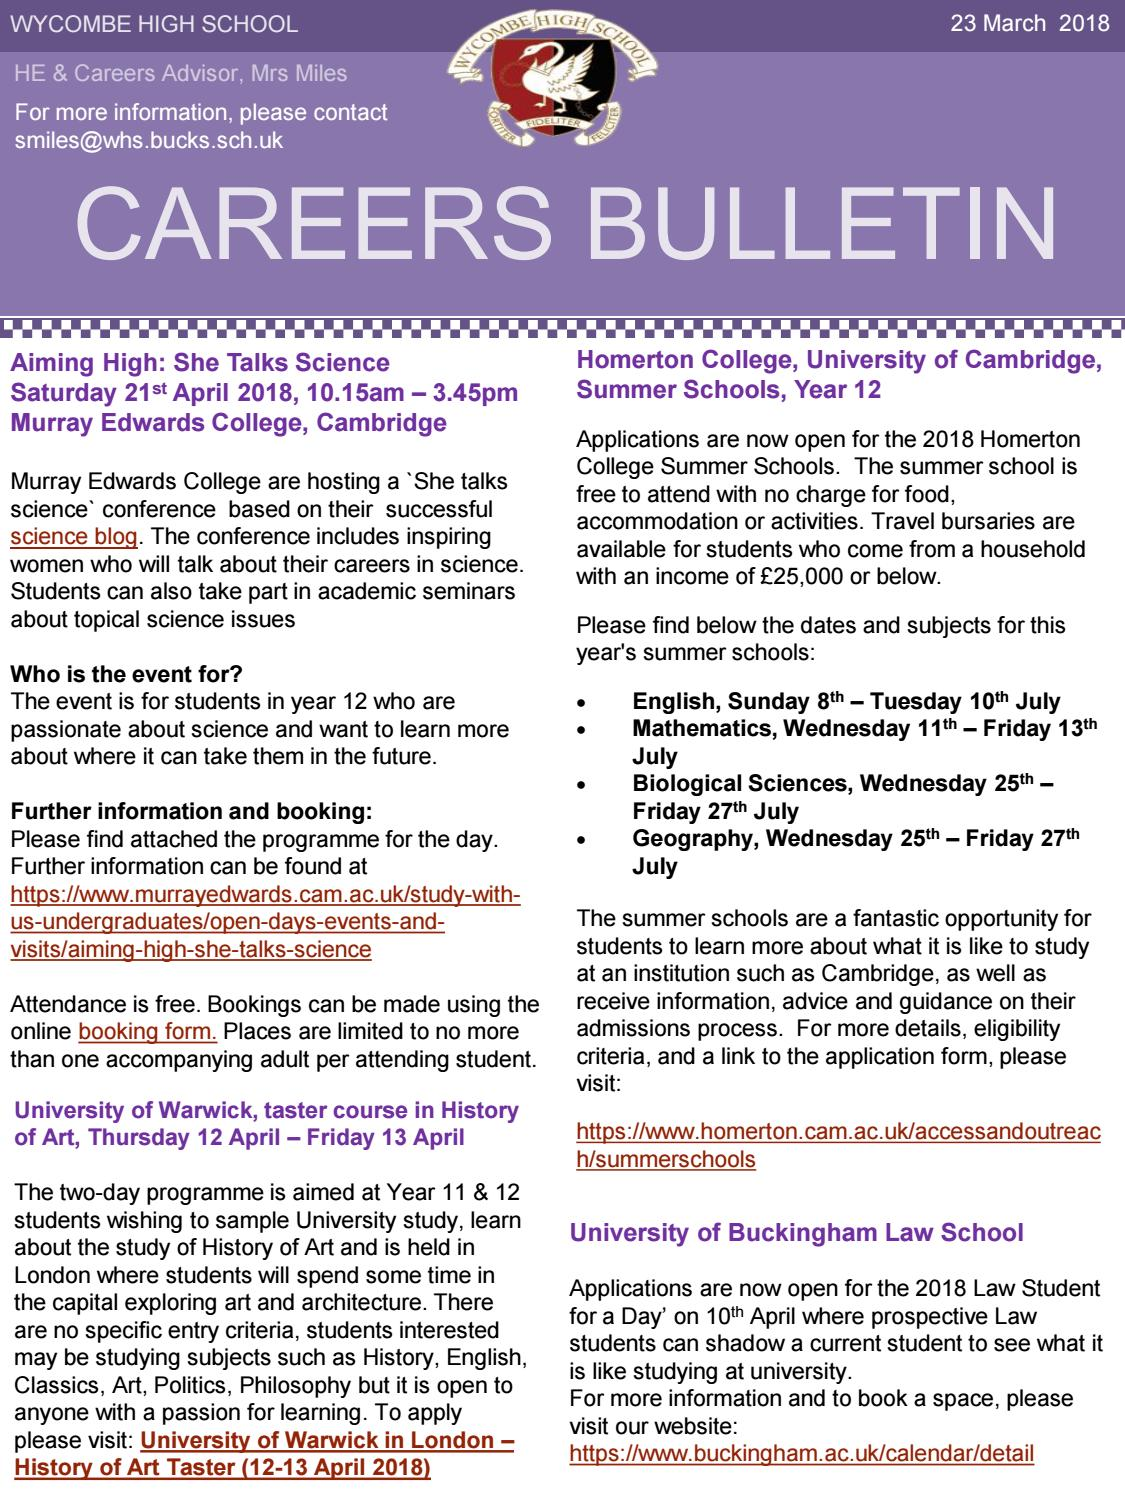 23 march 2018 Careers Bulletin by Wycombe High School - issuu